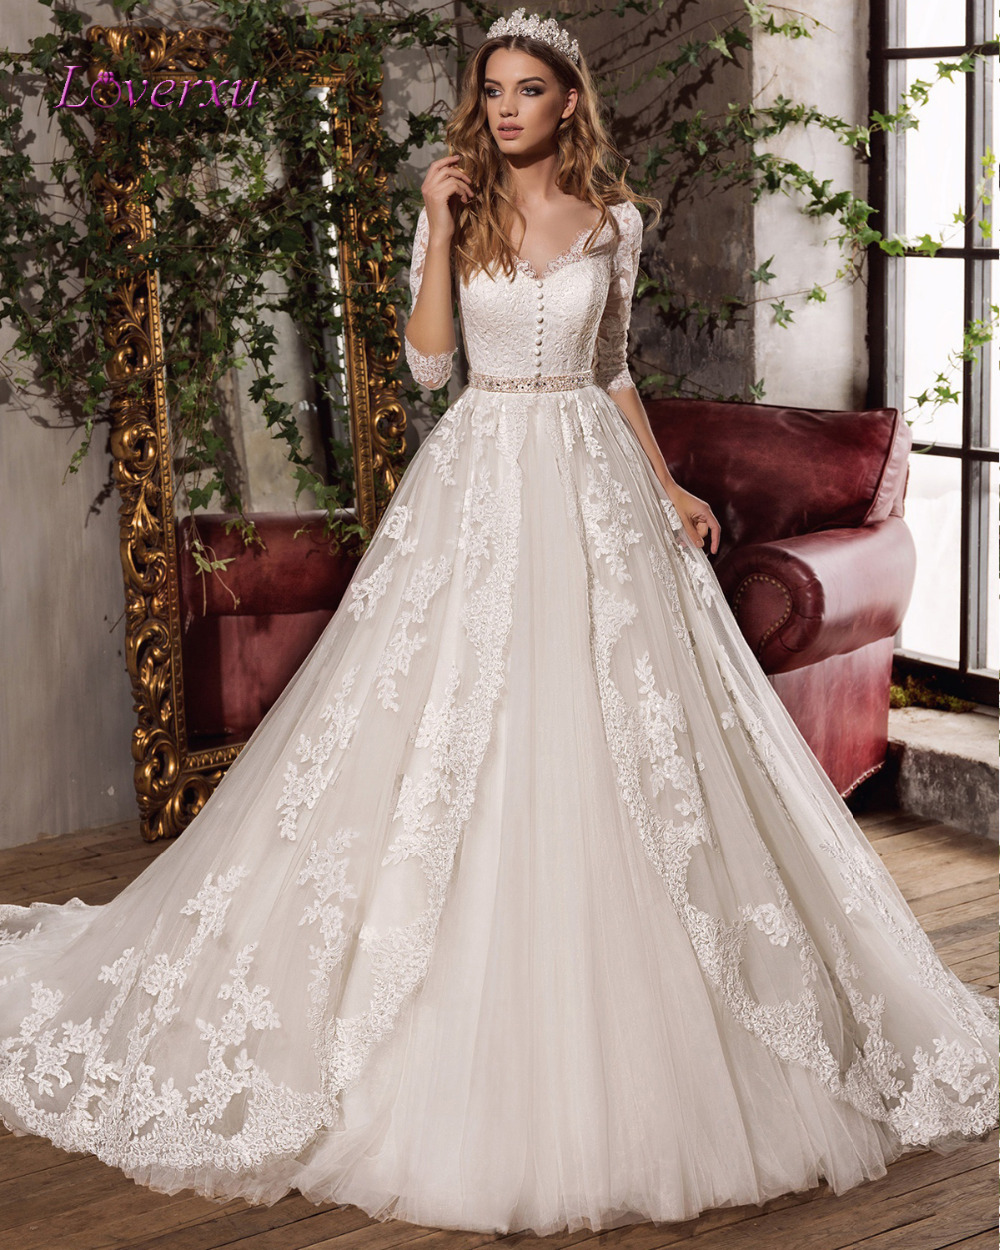 online buy wholesale wedding dresses from china wedding dresses wholesalers. Black Bedroom Furniture Sets. Home Design Ideas